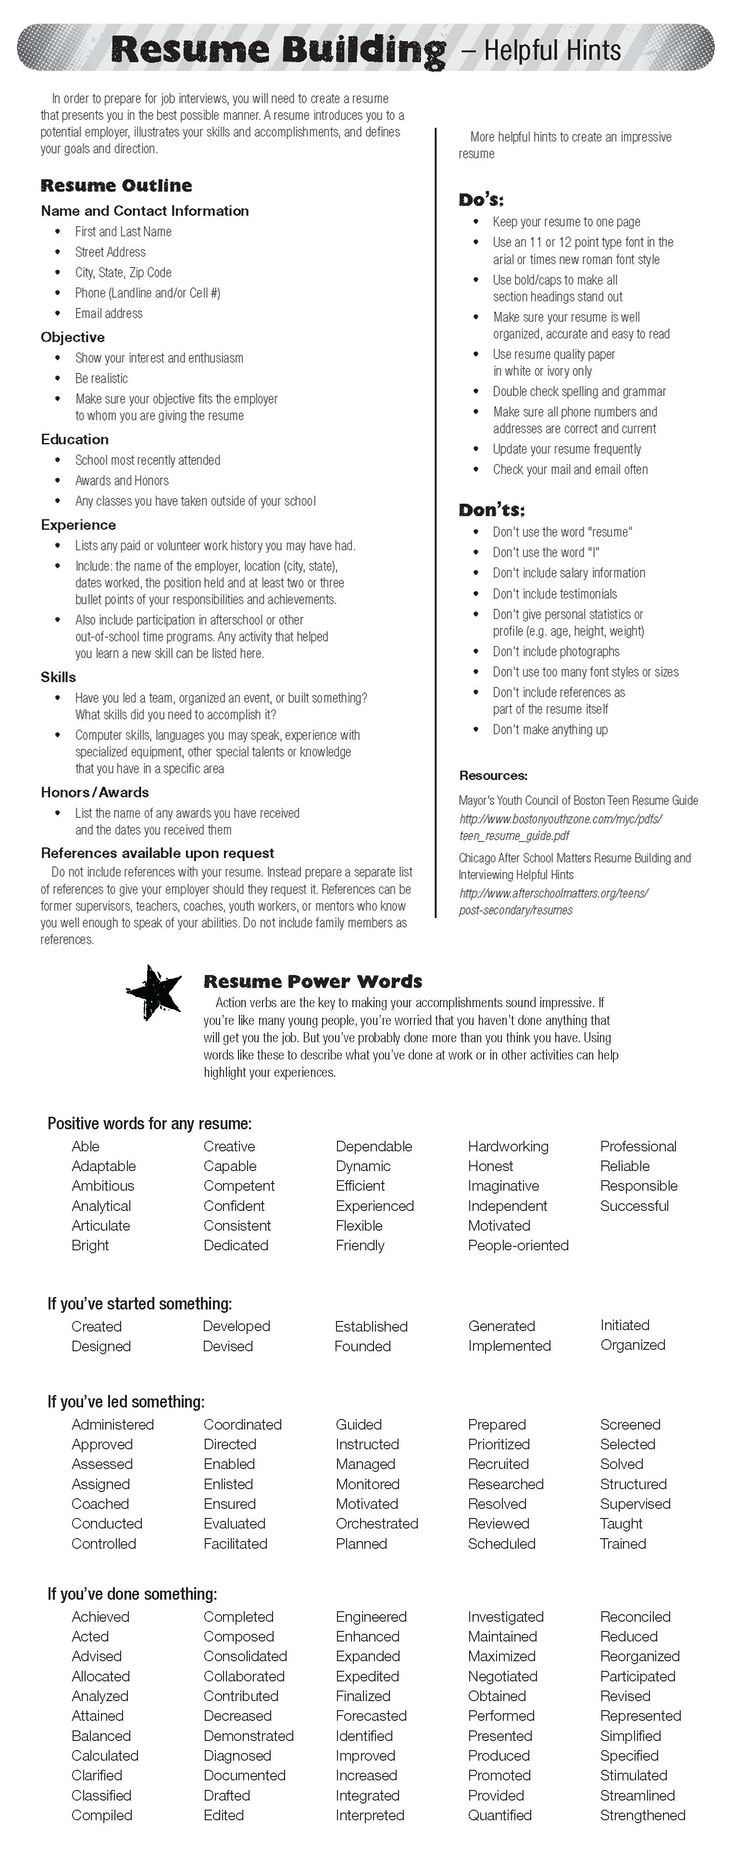 Opposenewapstandardsus  Terrific  Ideas About Resume On Pinterest  Cv Format Resume Cv And  With Fair  Ideas About Resume On Pinterest  Cv Format Resume Cv And Resume Templates With Amusing Resume Wizard Also Rn Resume In Addition Sample Resume Format And Customer Service Resume Examples As Well As Great Resume Examples Additionally Work Resume From Pinterestcom With Opposenewapstandardsus  Fair  Ideas About Resume On Pinterest  Cv Format Resume Cv And  With Amusing  Ideas About Resume On Pinterest  Cv Format Resume Cv And Resume Templates And Terrific Resume Wizard Also Rn Resume In Addition Sample Resume Format From Pinterestcom